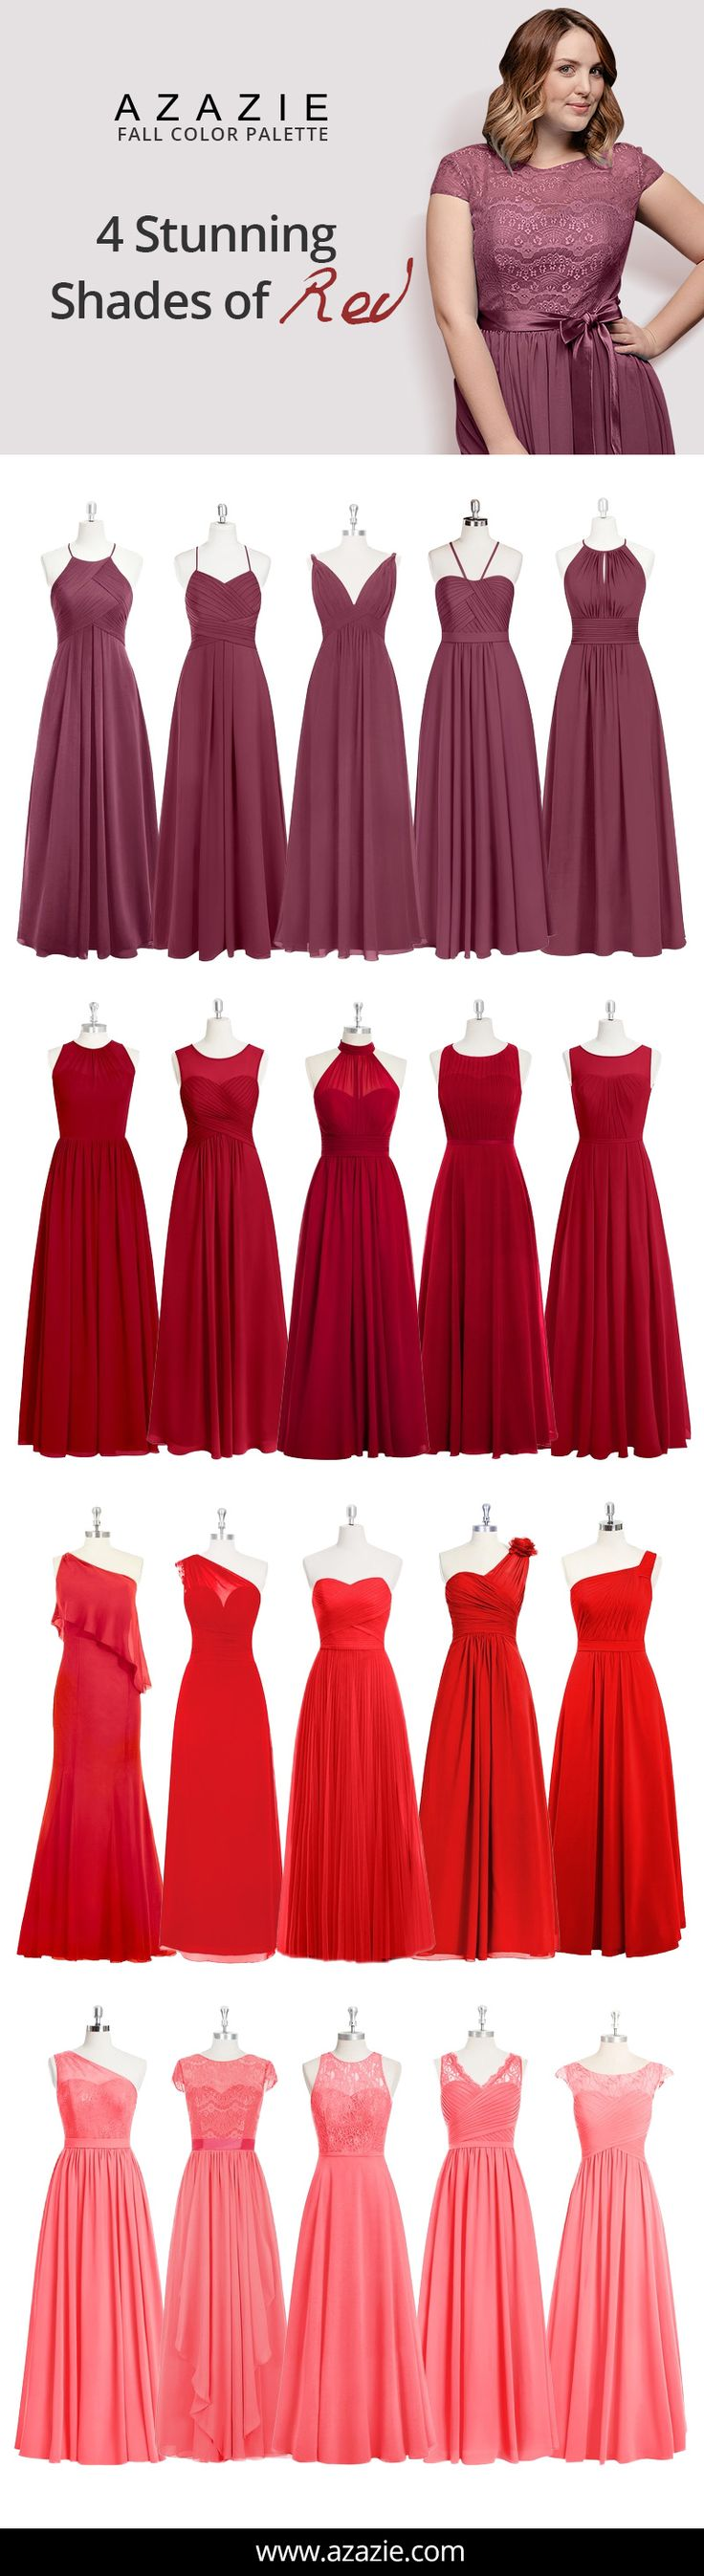 Best 20+ Red bridesmaid dresses ideas on Pinterest | Christmas ...